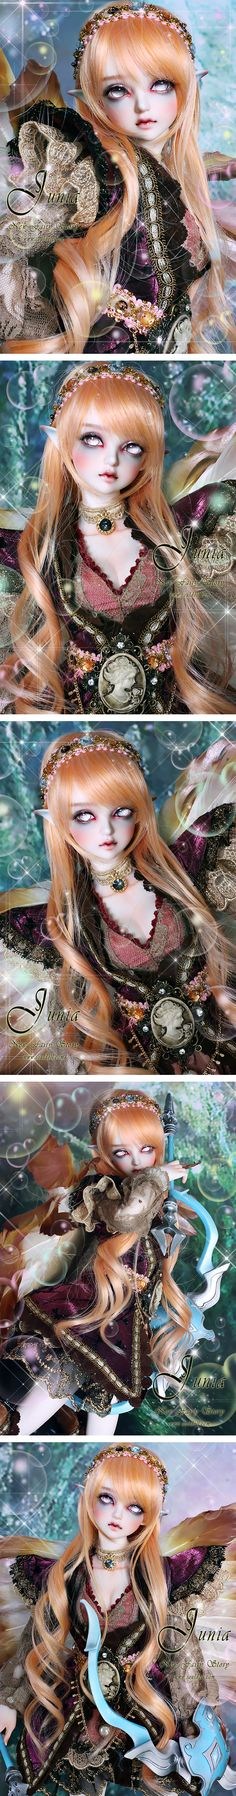 SOULDOLL Fairy Story Junia - Human Version http://souldoll.com/shop/step1.php?number=3938